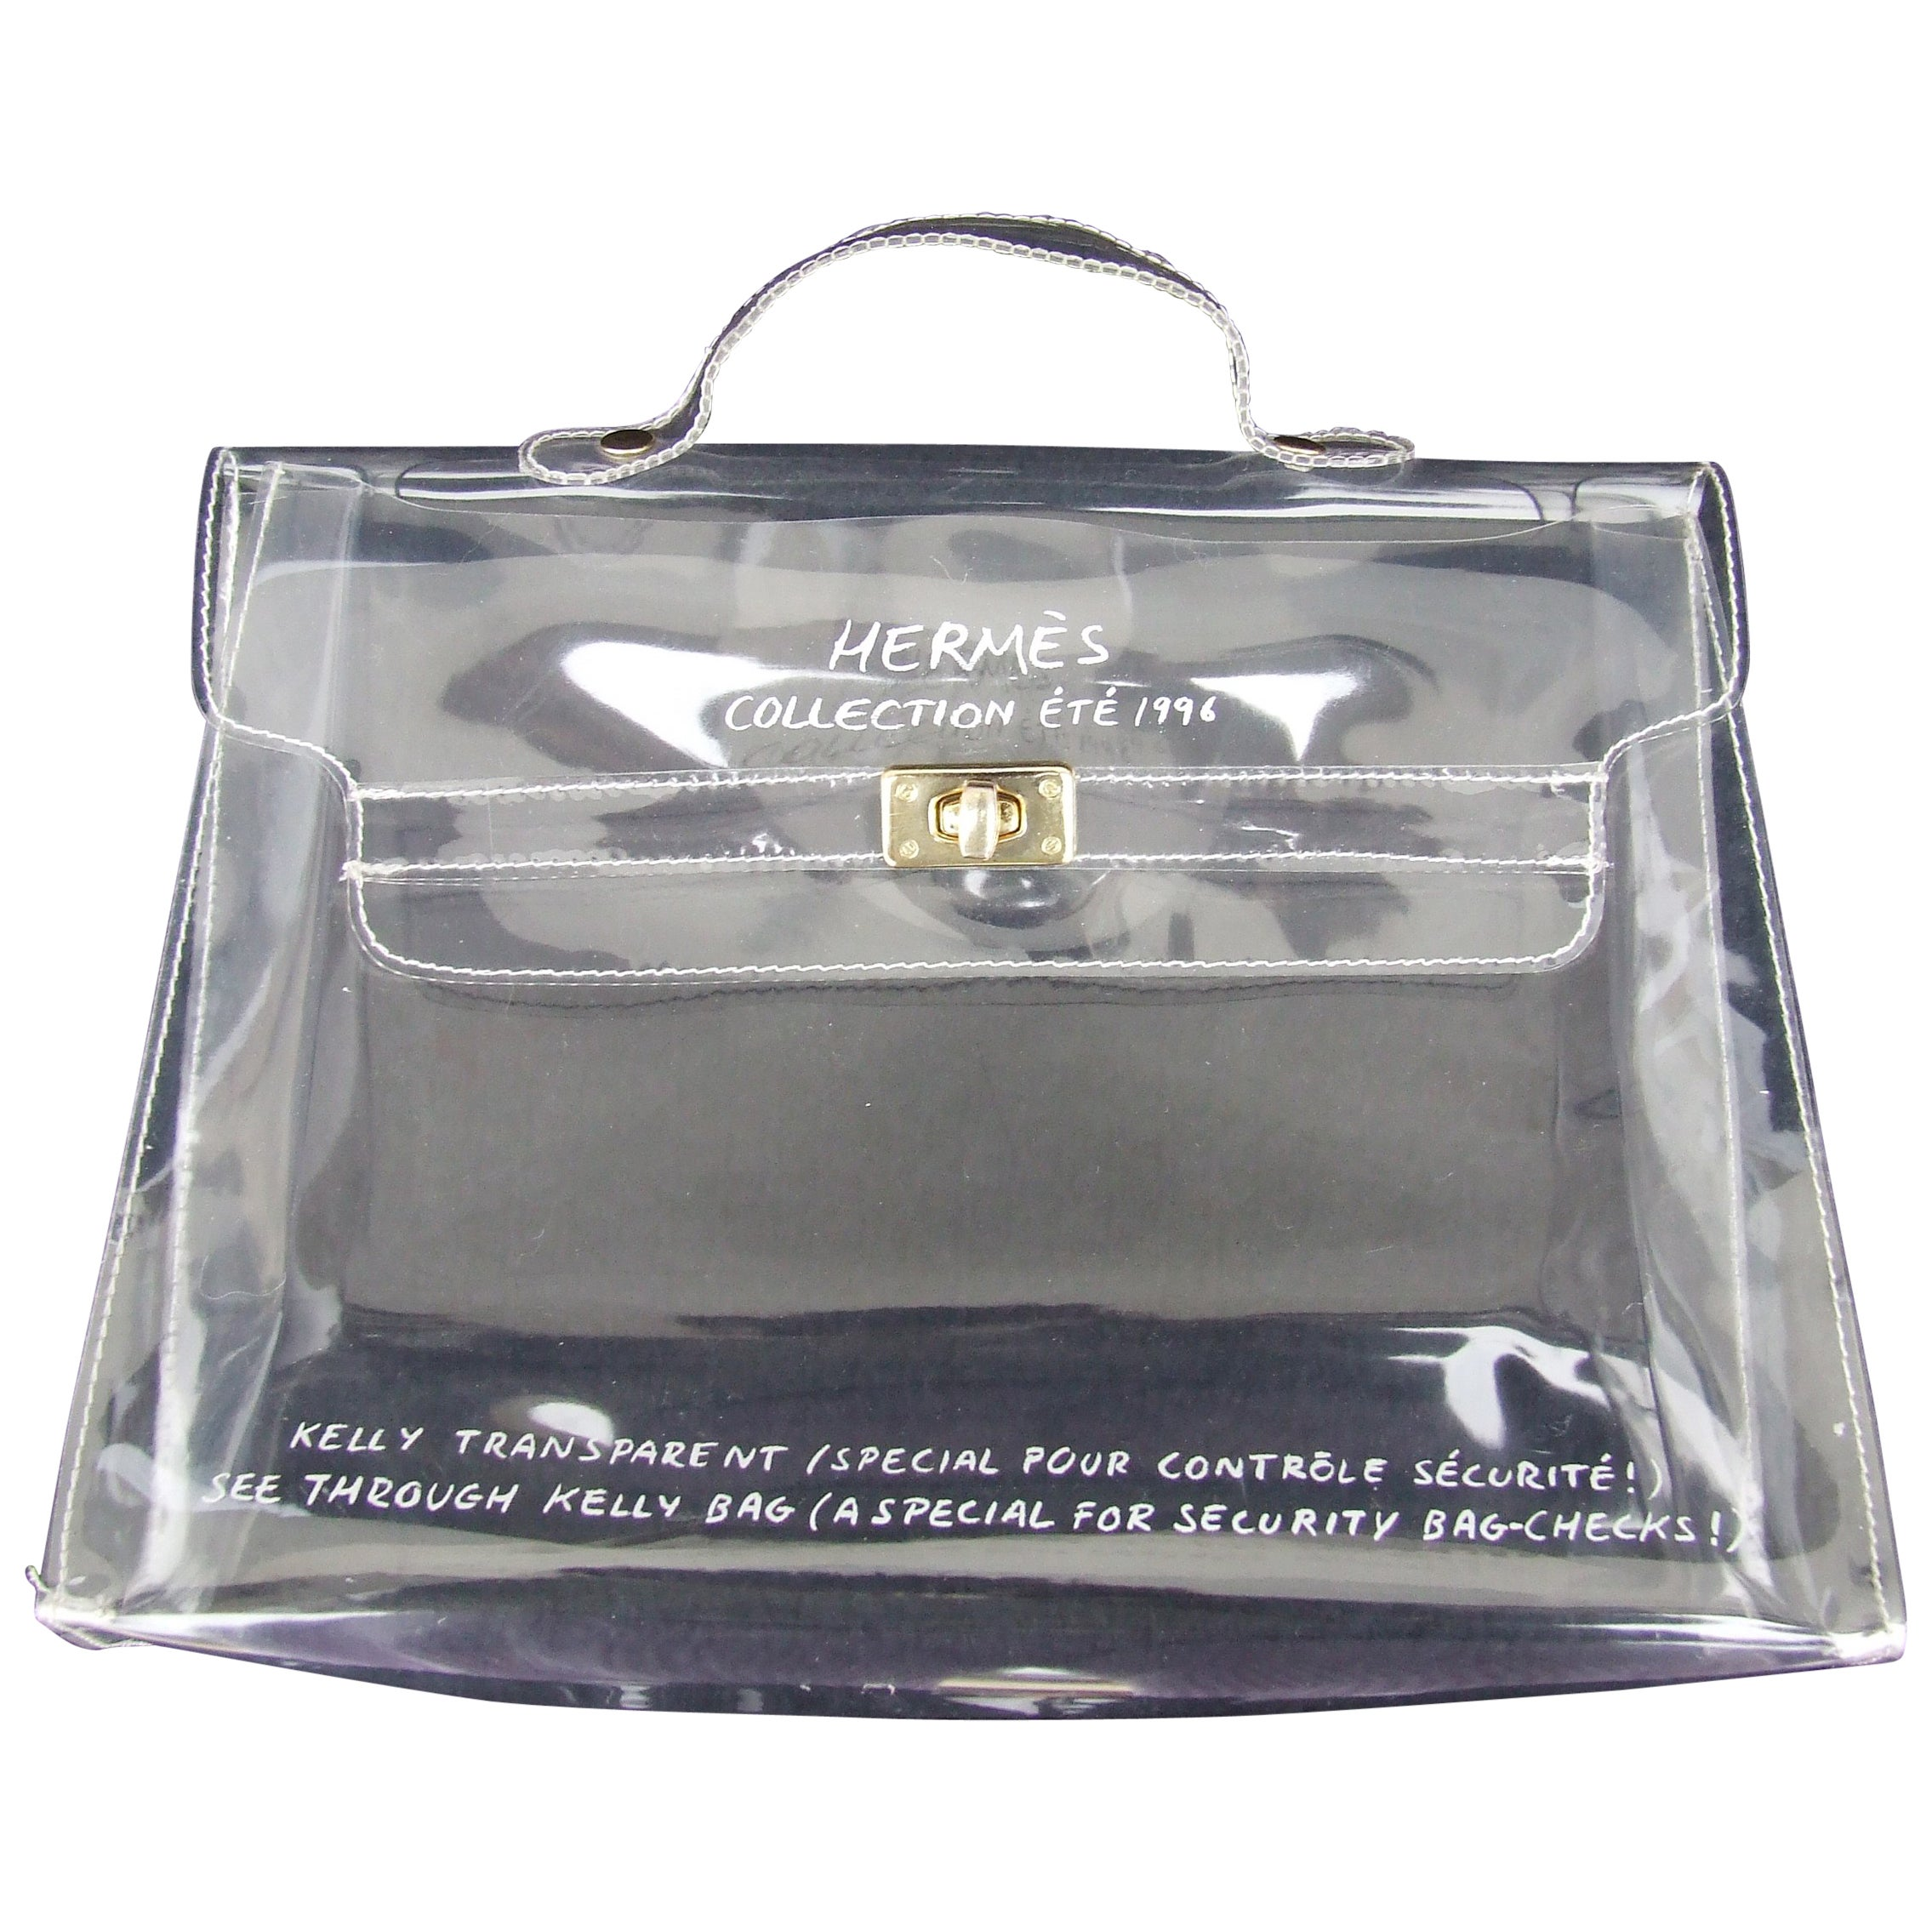 Hermes Collector See Through Kelly Bag Special Security Check In 1996 32 Cm At 1stdibs